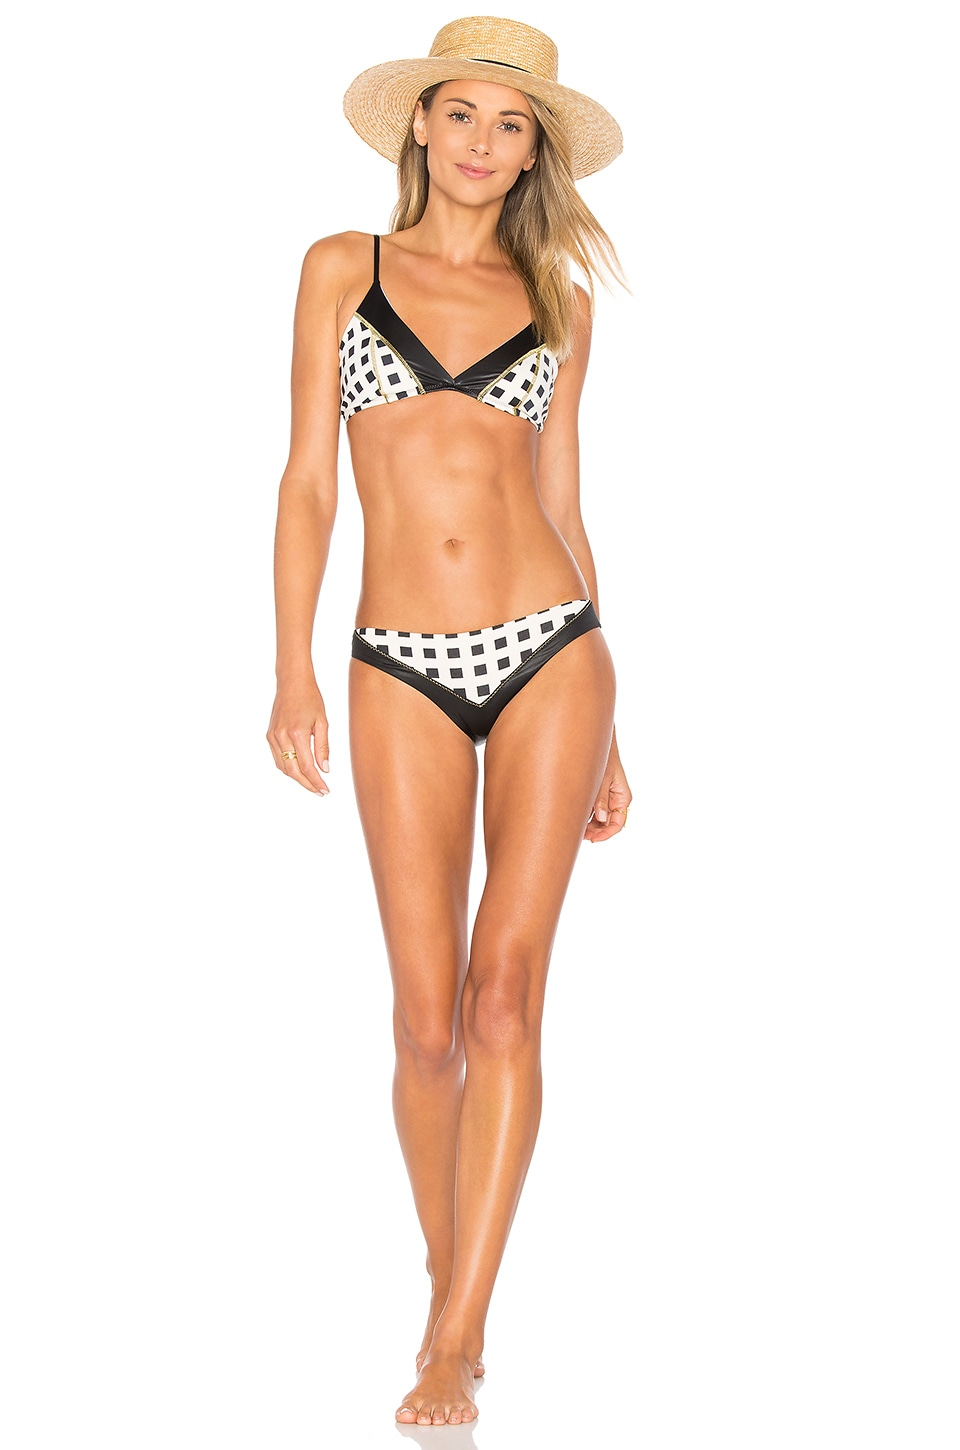 Shelly Geometric Bikini Set by Gregor Pirouzi